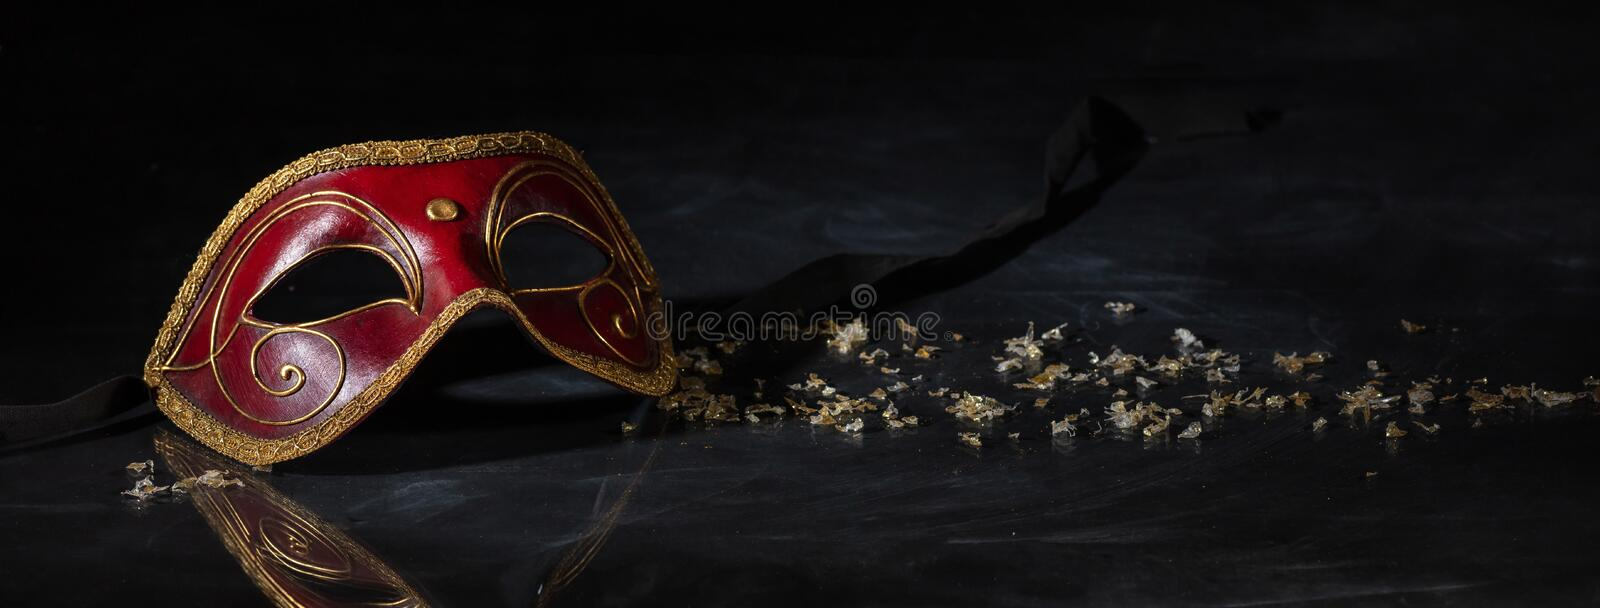 Carnival mask on black background, reflections, banner. Carnival time. Venetian mask red and gold color on black background, reflections, banner stock photos